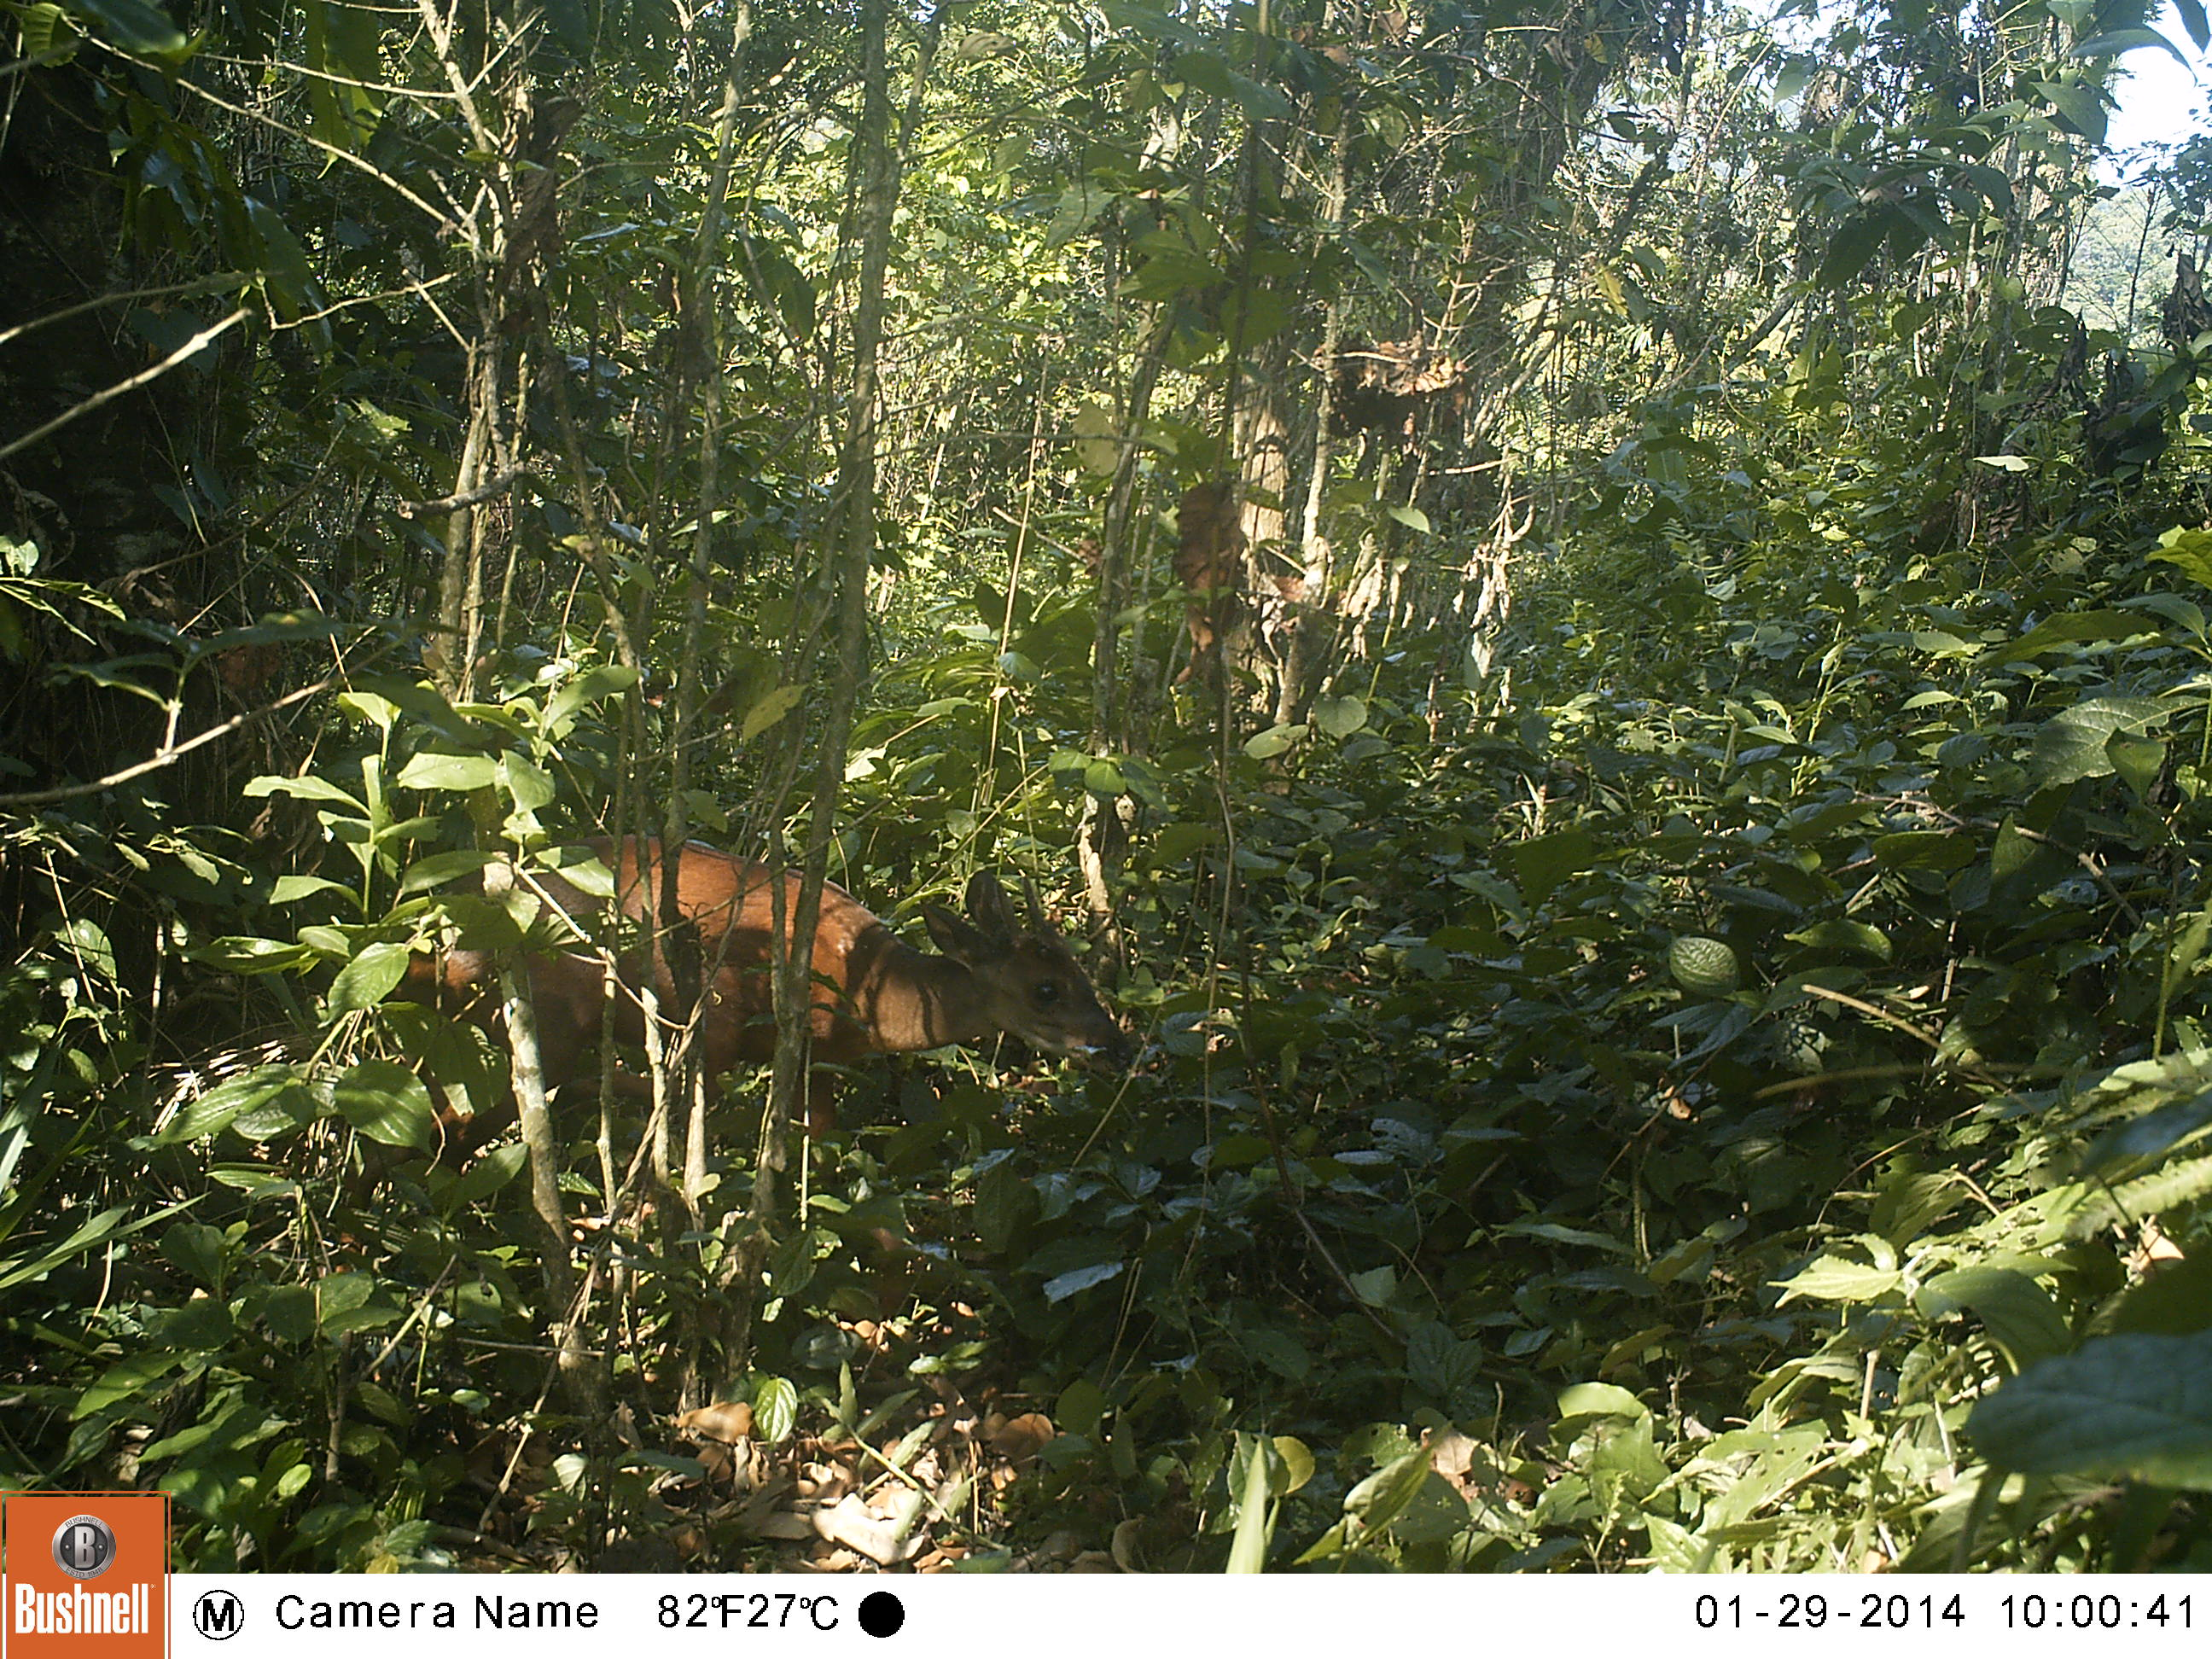 small brown deer in dense forest